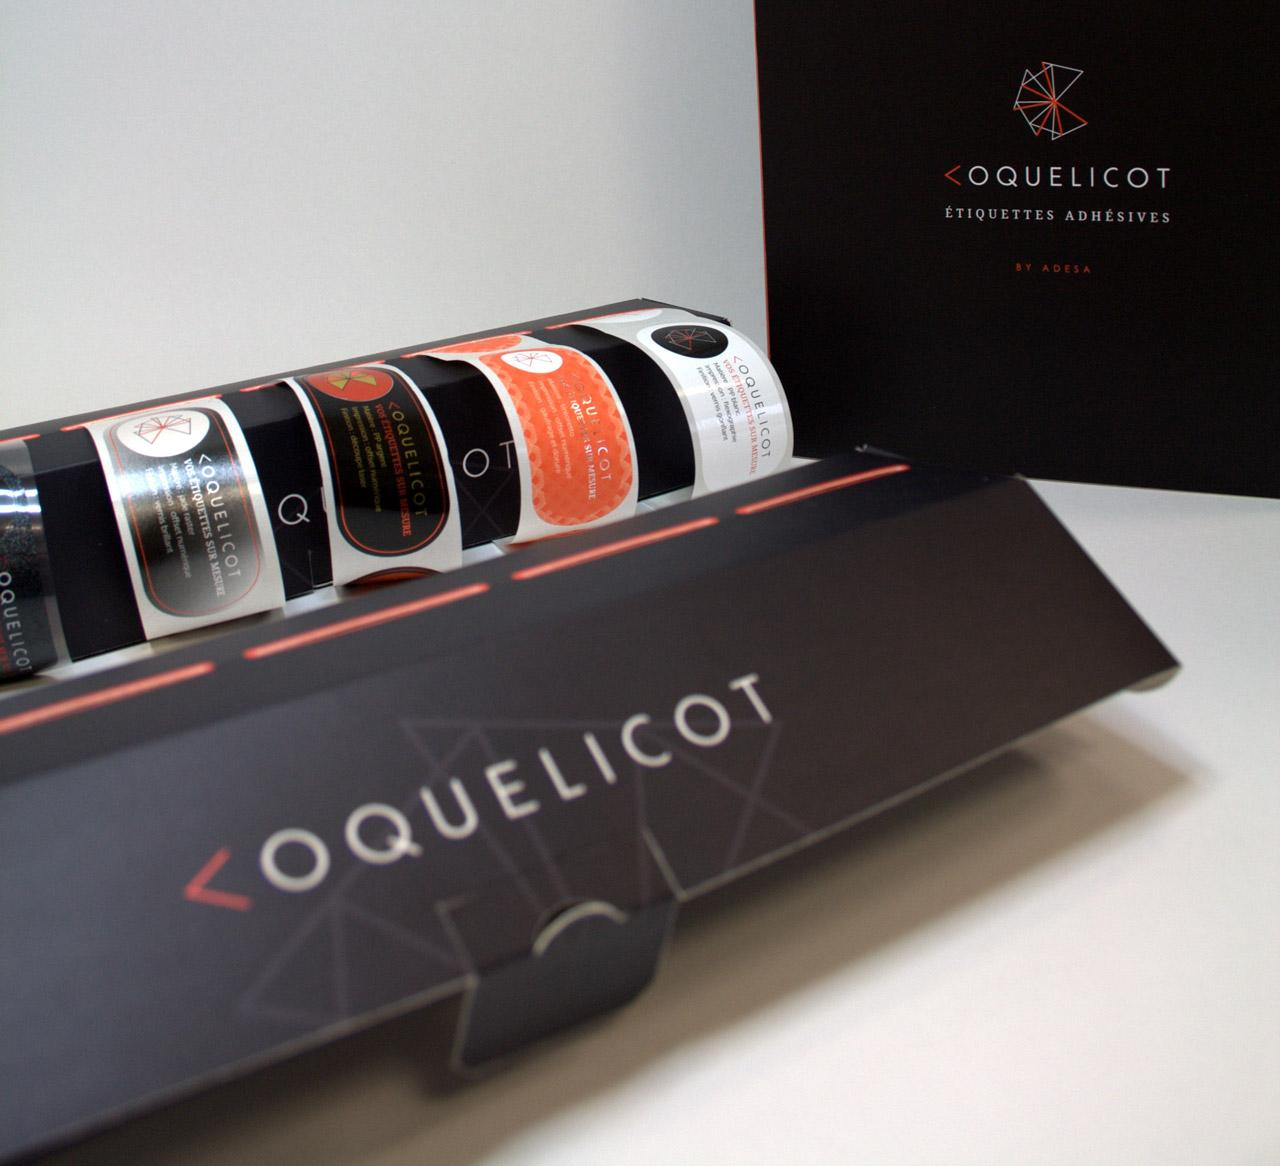 coquelicot-creation-packaging-etiquettes-caconcept-alexis-cretin-2